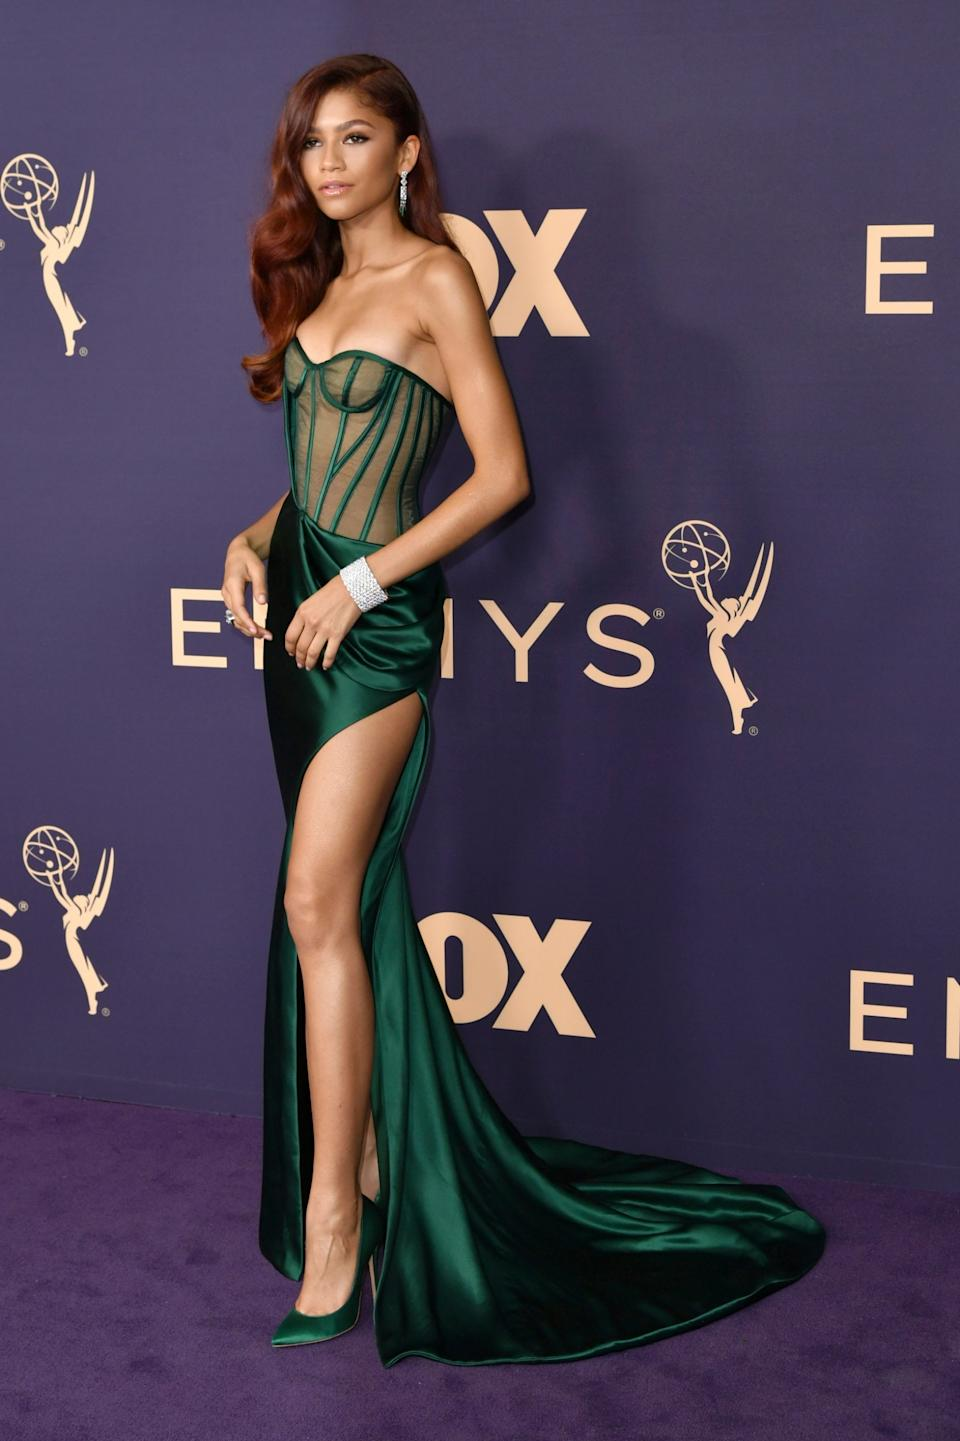 Zendaya at the 2019 Emmys (Invision/AP)